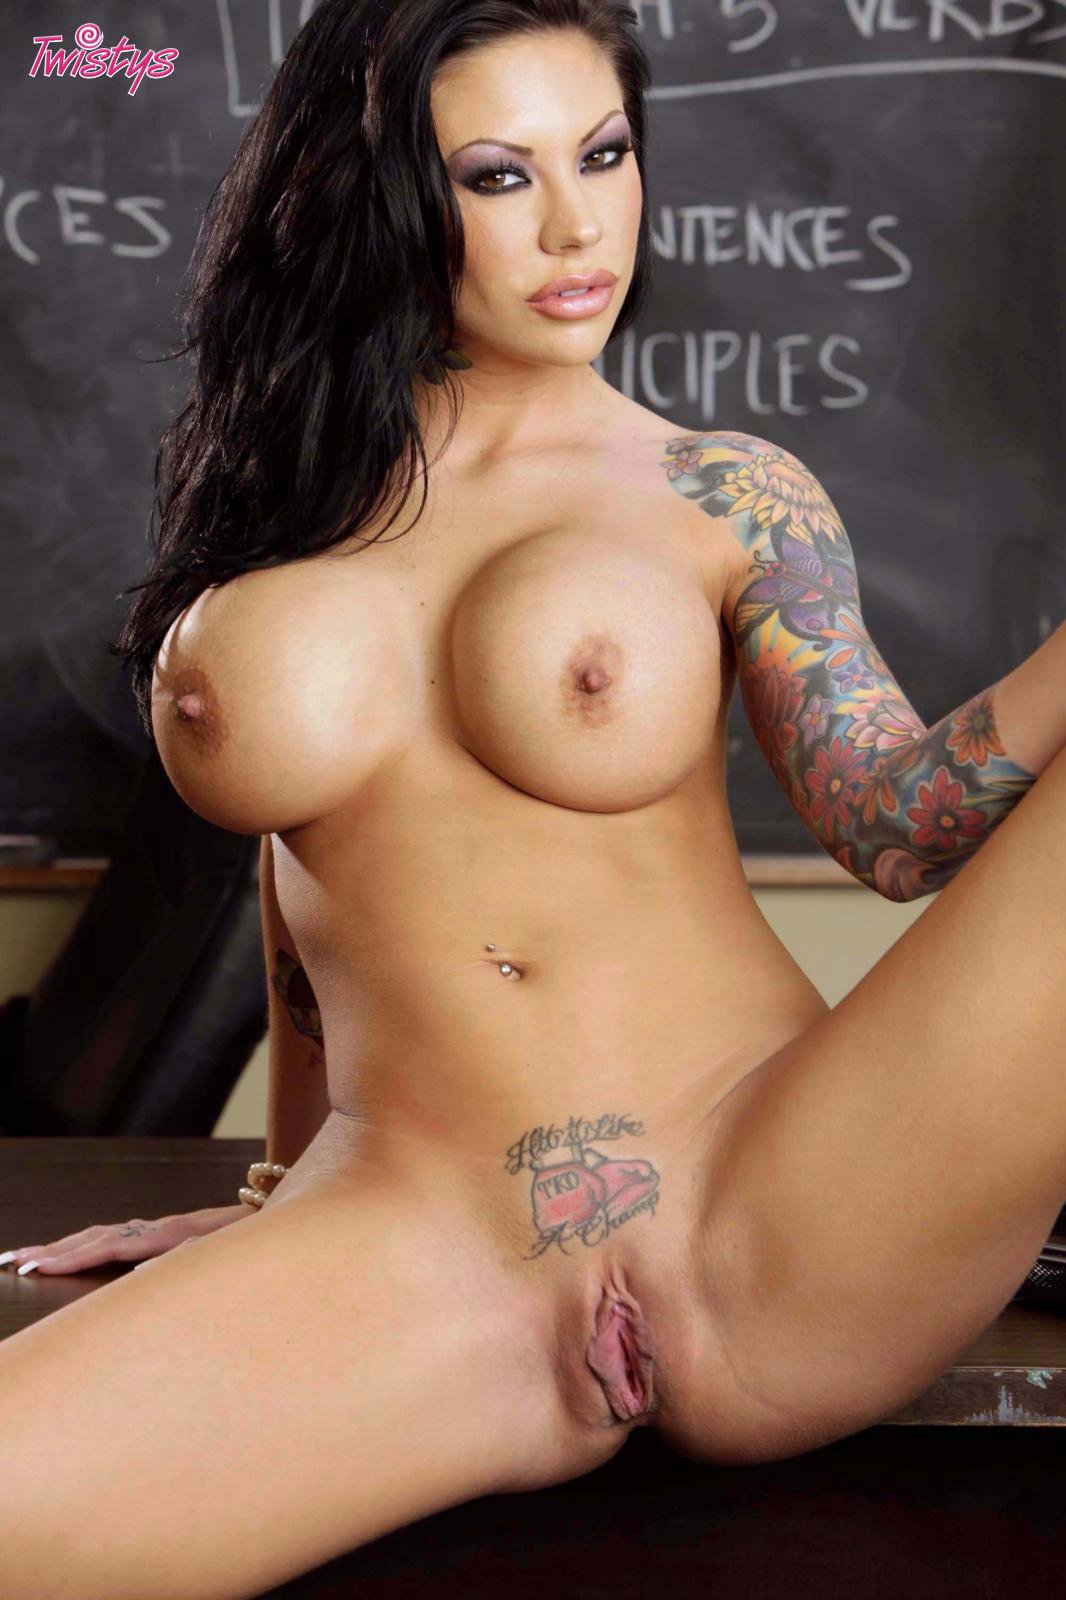 hot-teacher-weth-big-tats-nude-venuzealan-sex-babes